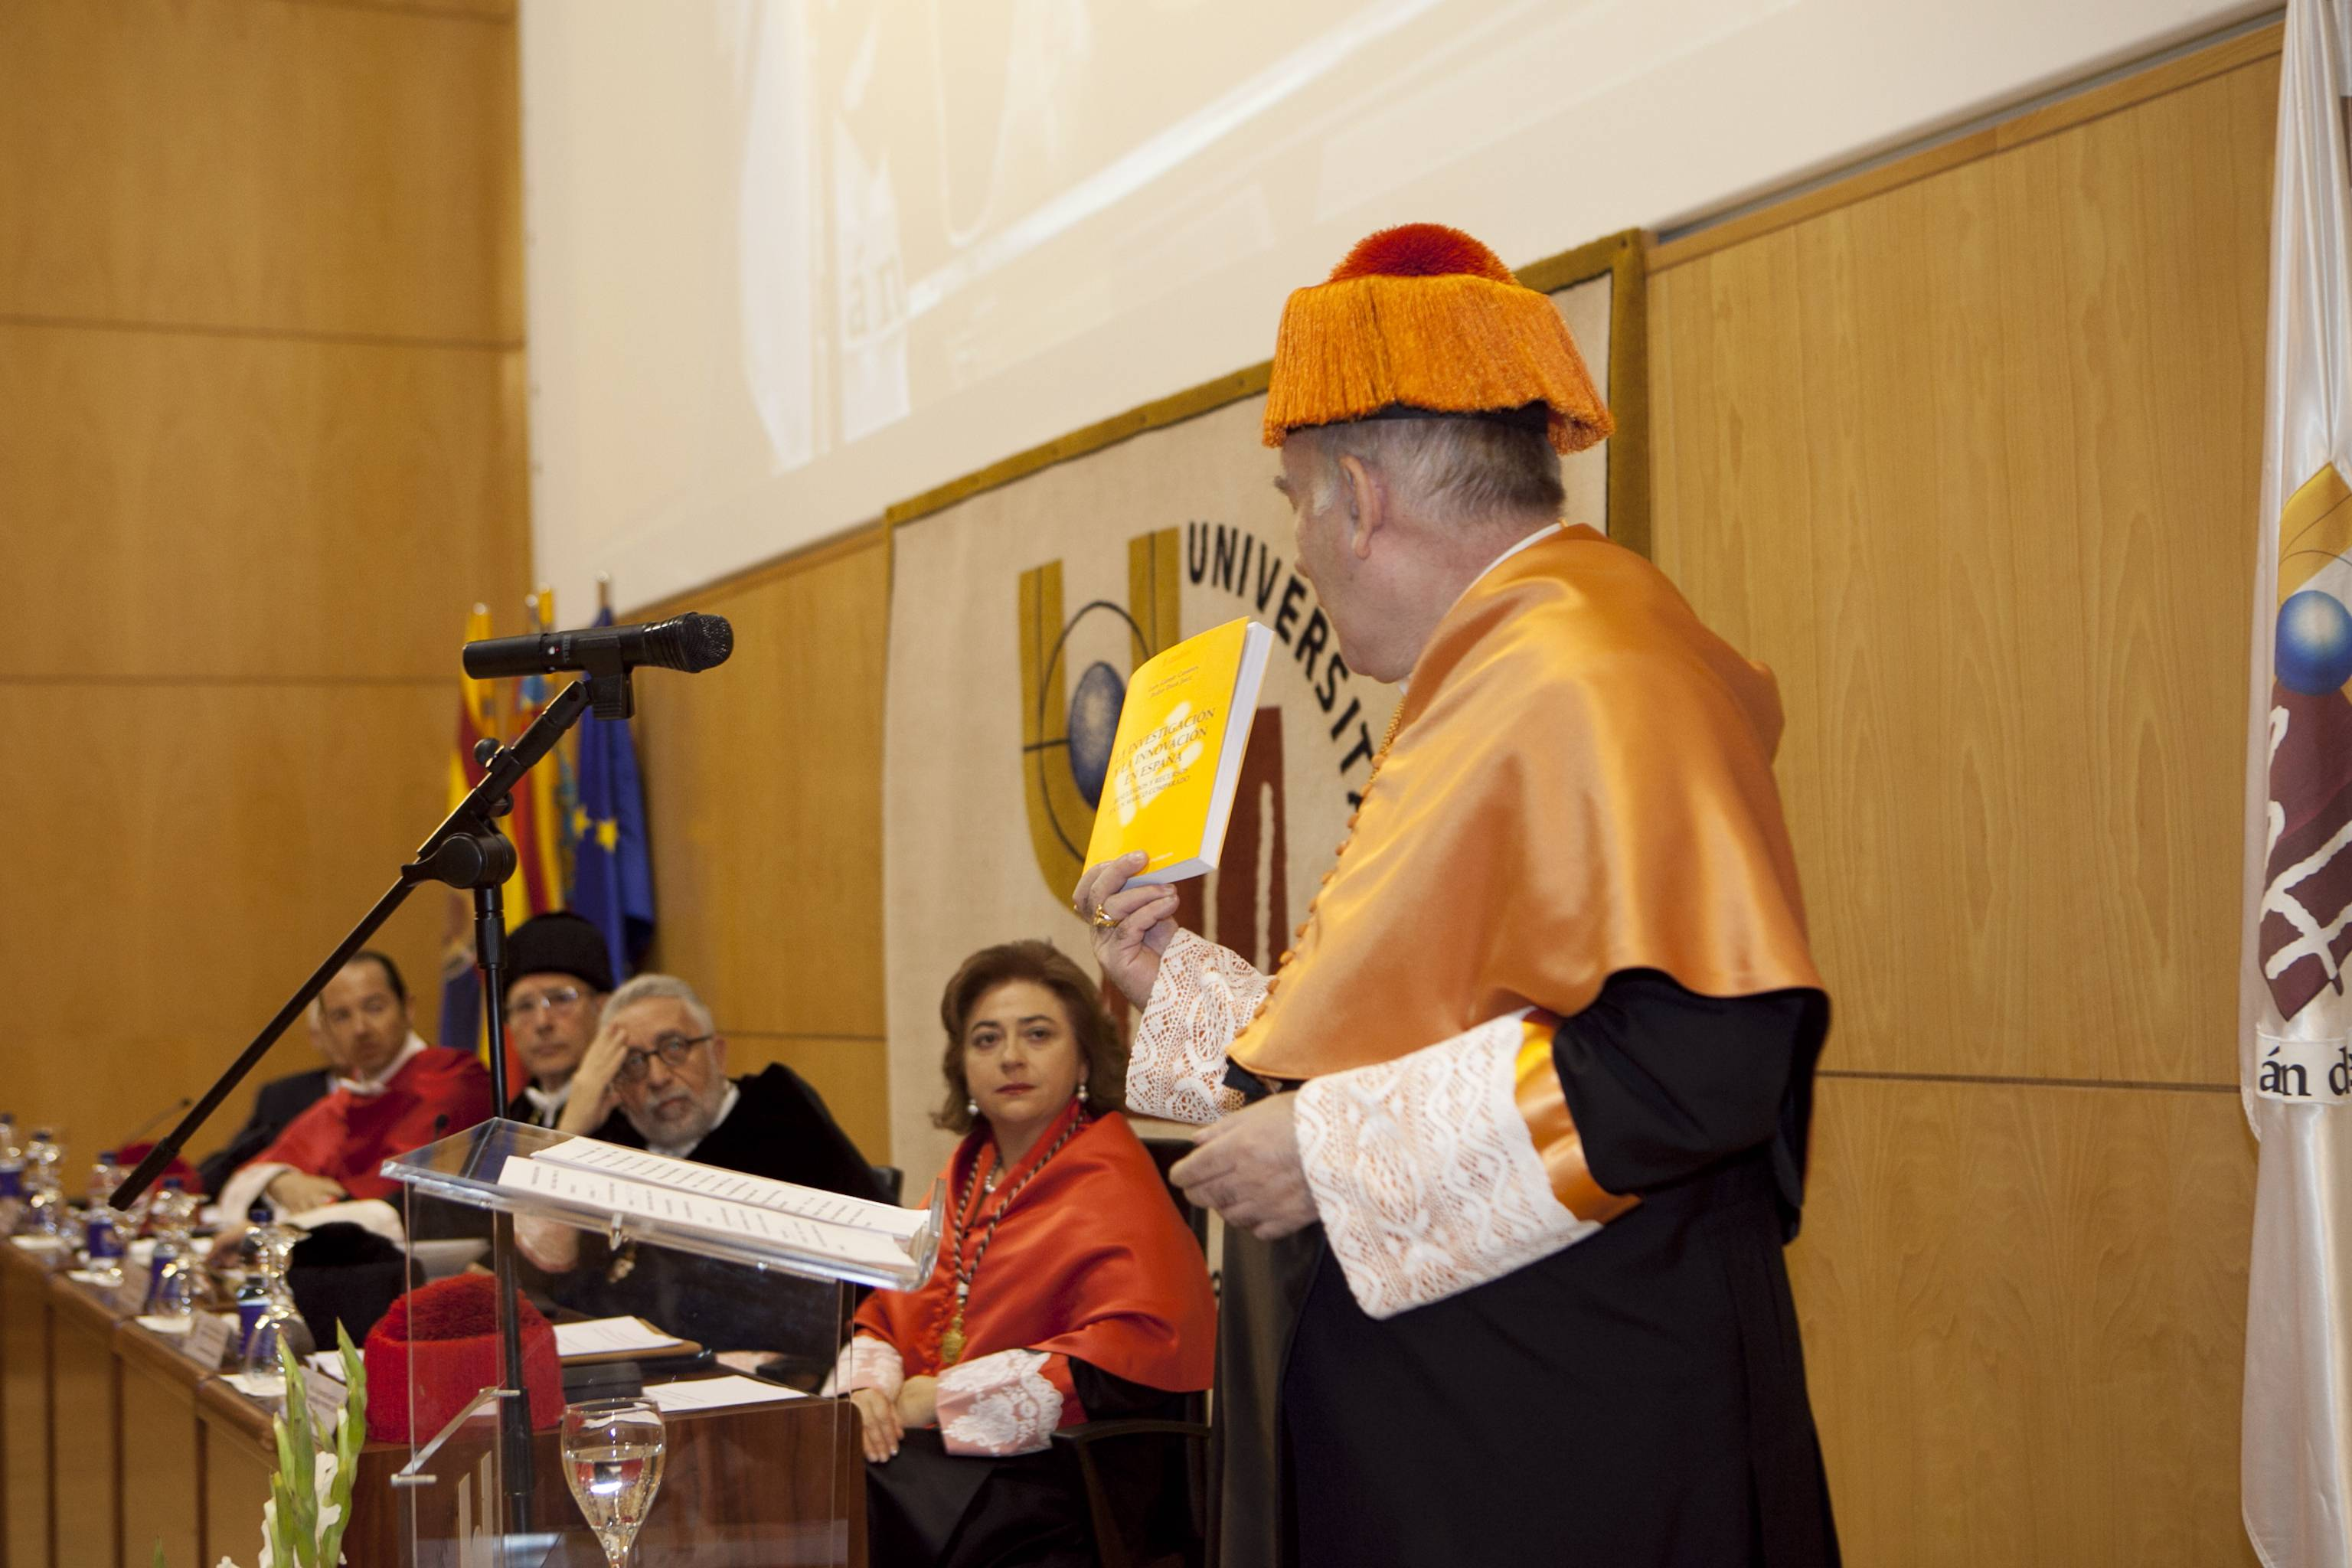 doctor-honoris-causa-luis-gamir_mg_0873.jpg